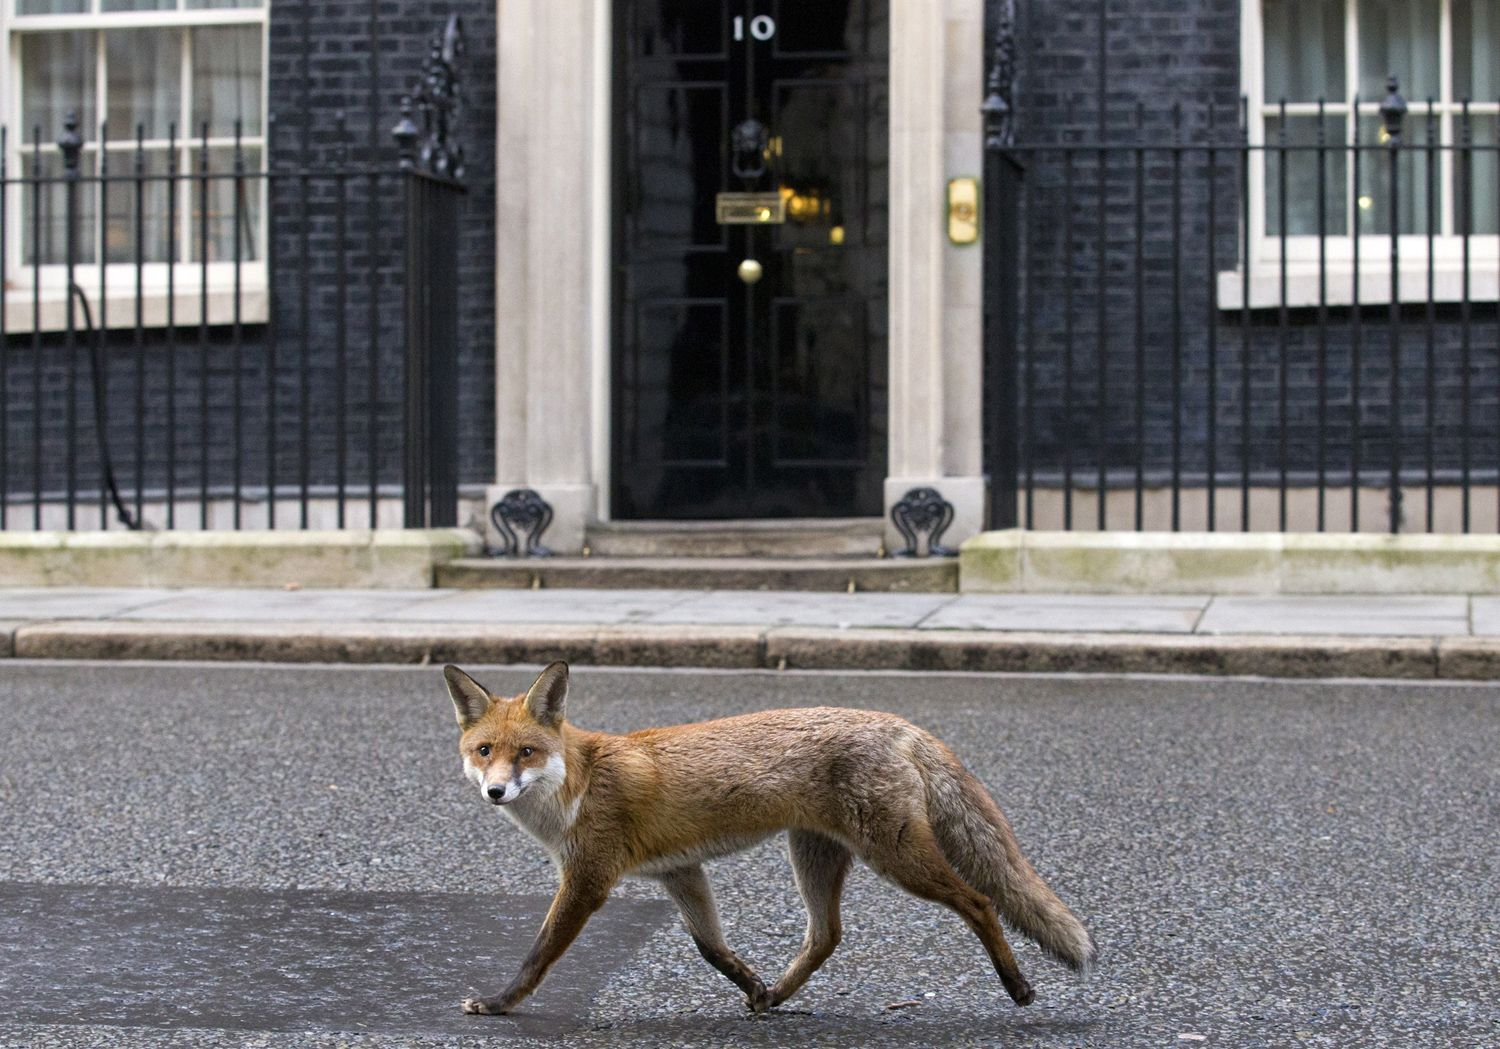 A fox runs past the door of 10 Downing Street in London on January 13.